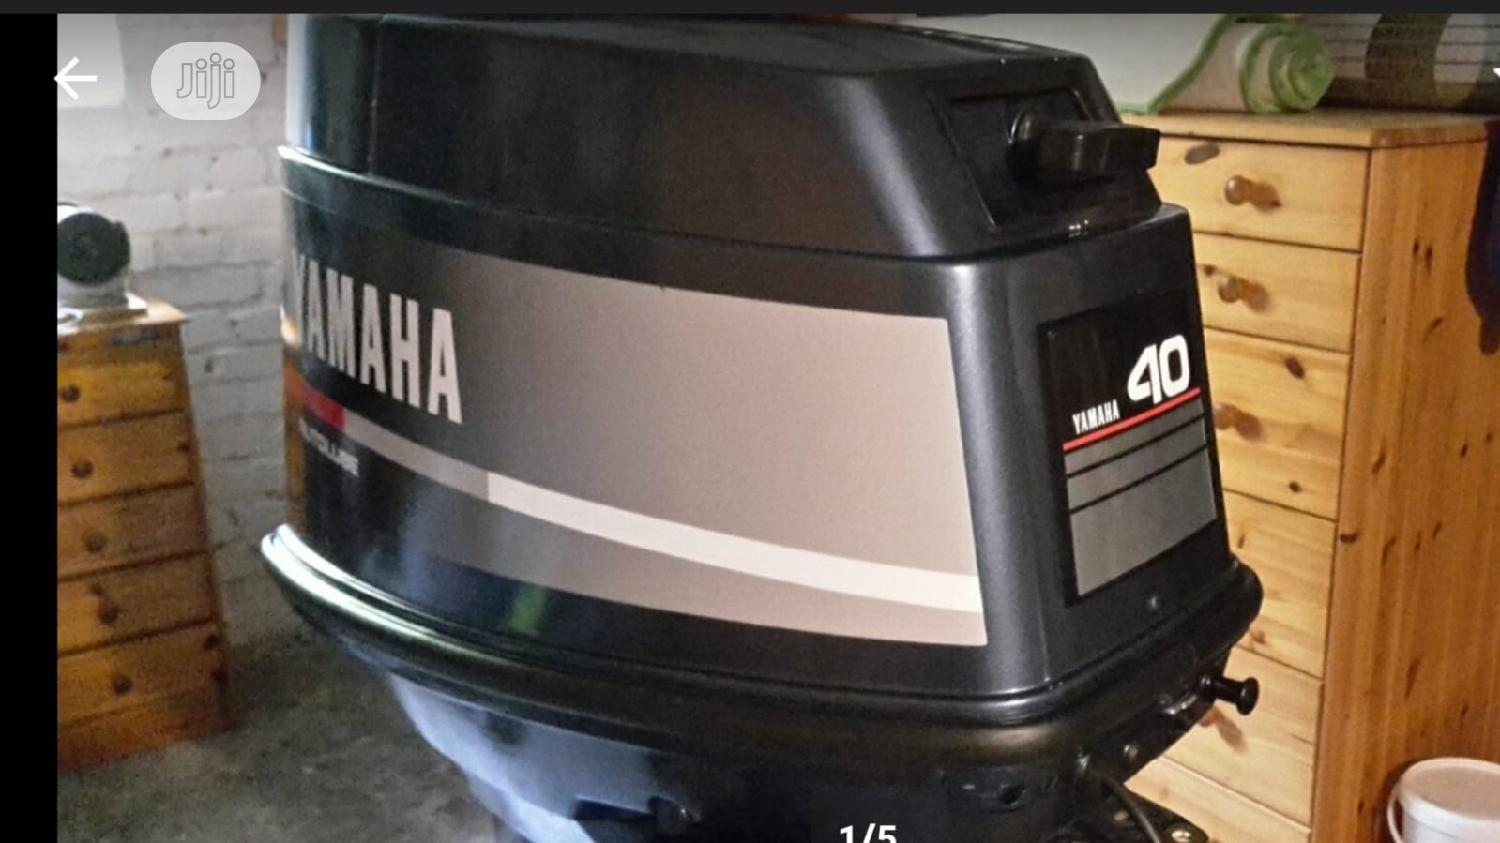 Clean Yamah Outboard Boat Engines   Watercraft & Boats for sale in Ikeja, Lagos State, Nigeria